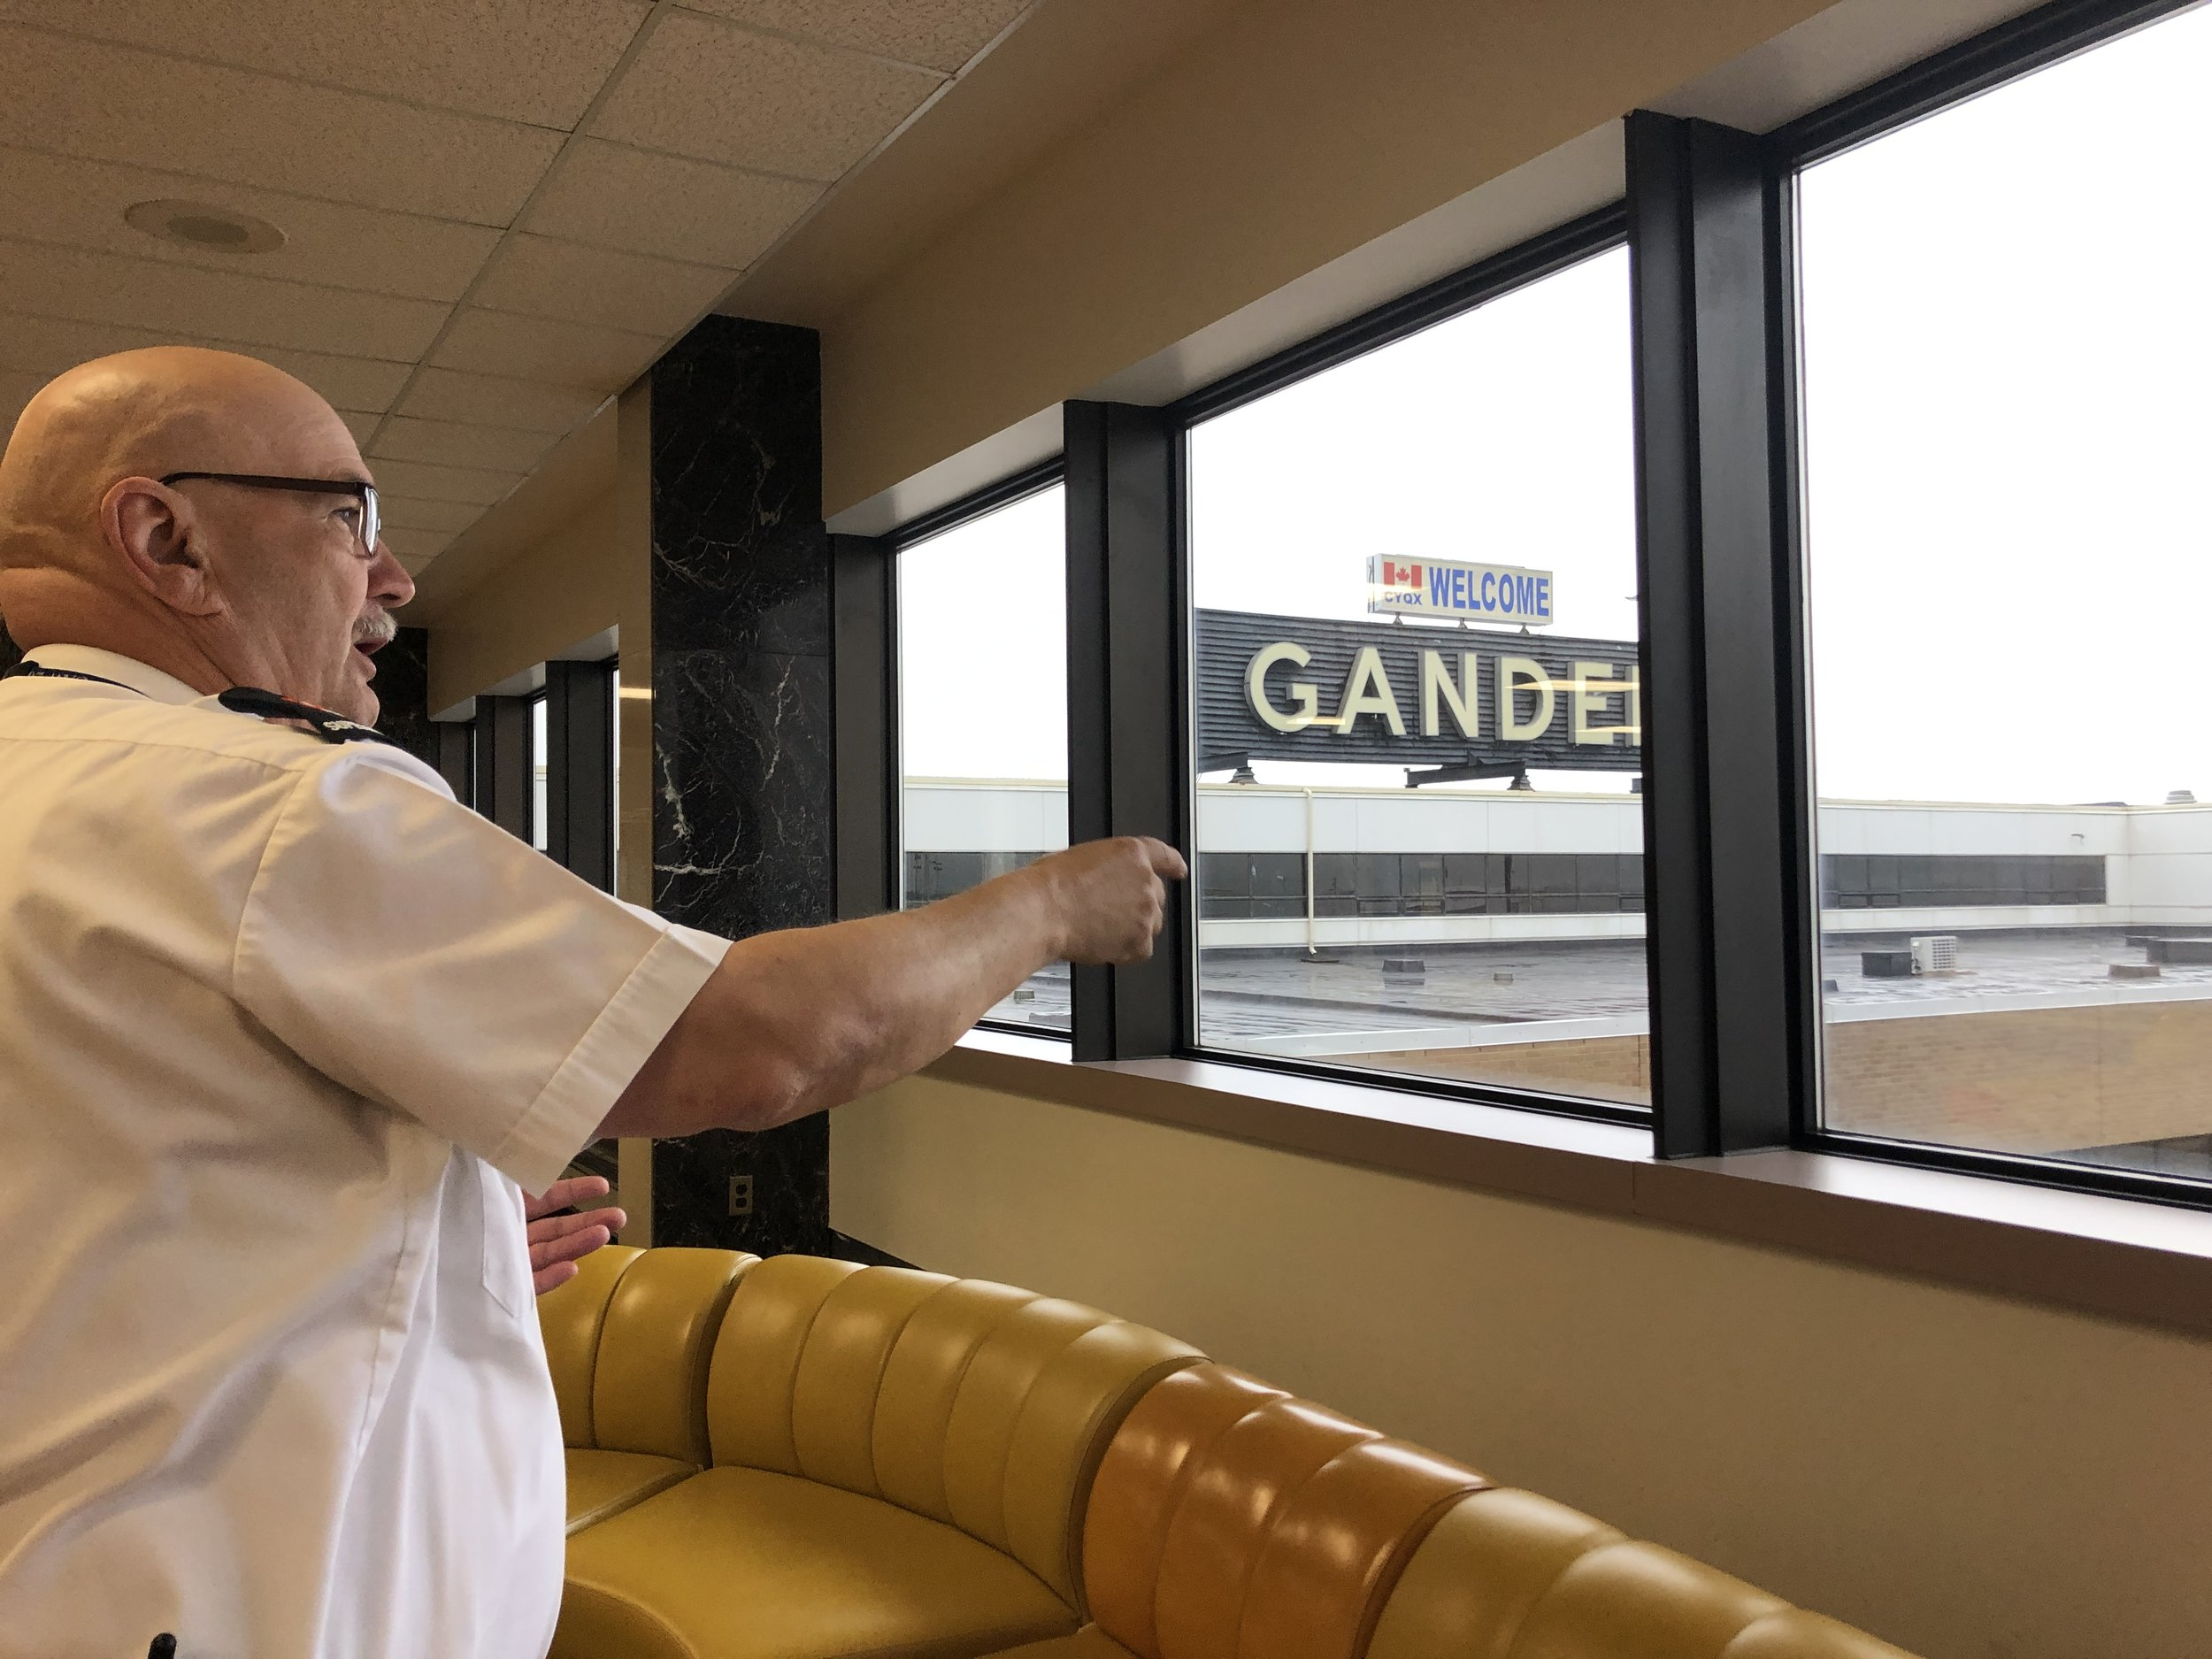 Gerry giving a tour at Gander International Airport